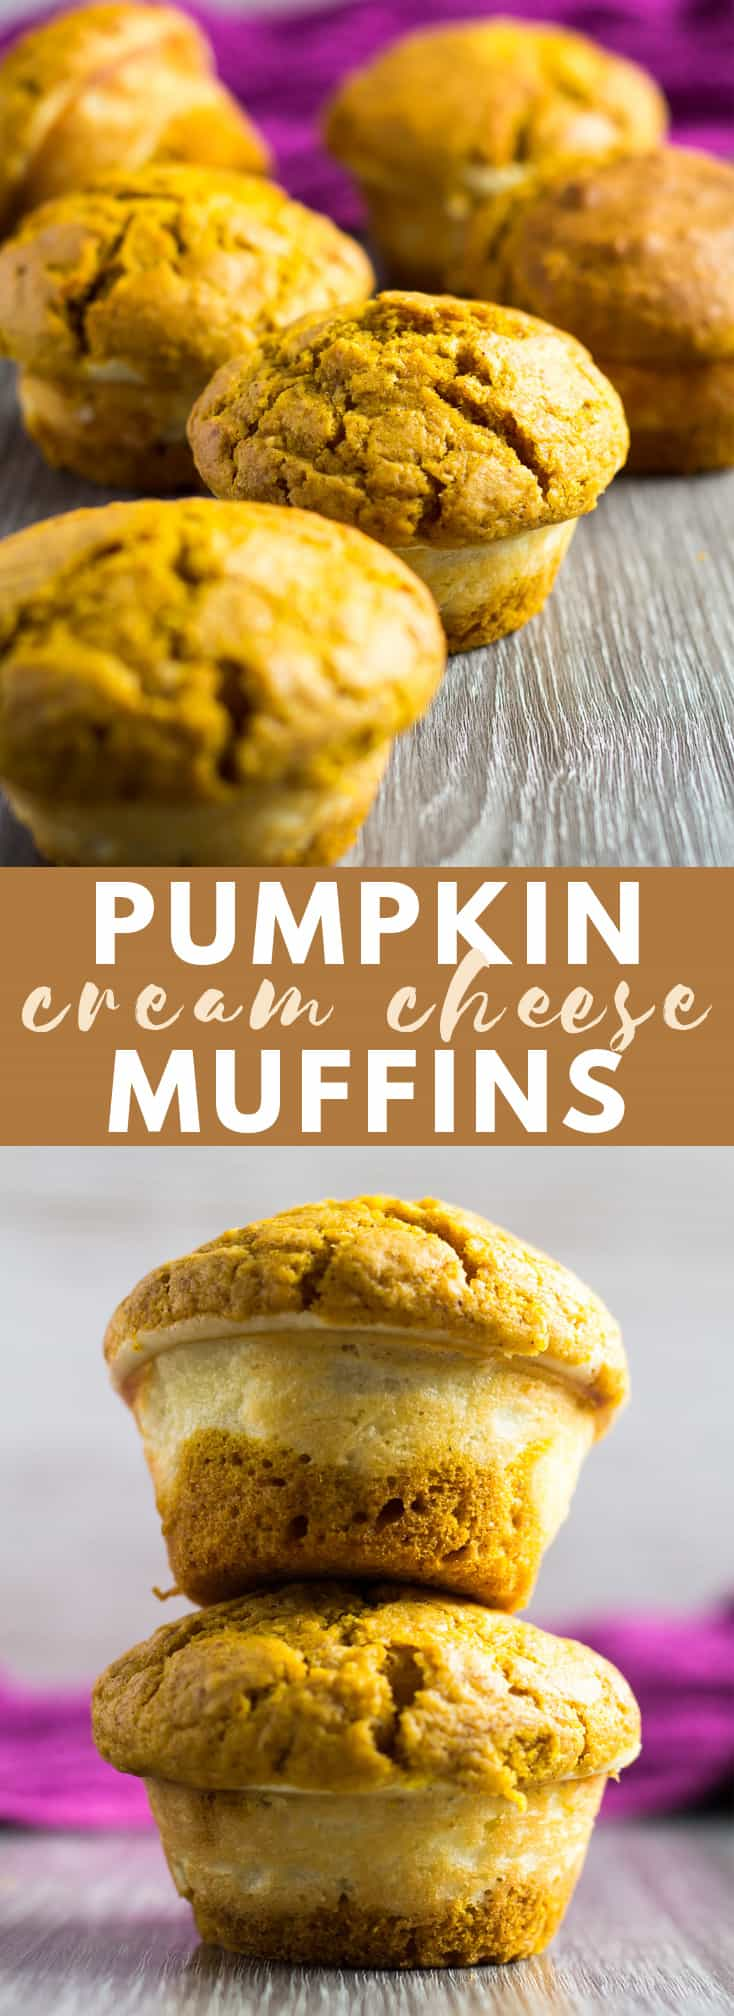 Pumpkin Cream Cheese Muffins - Deliciously moist and fluffy pumpkin muffins that are stuffed with a creamy cheesecake layer. Perfect for those cooler autumn mornings!